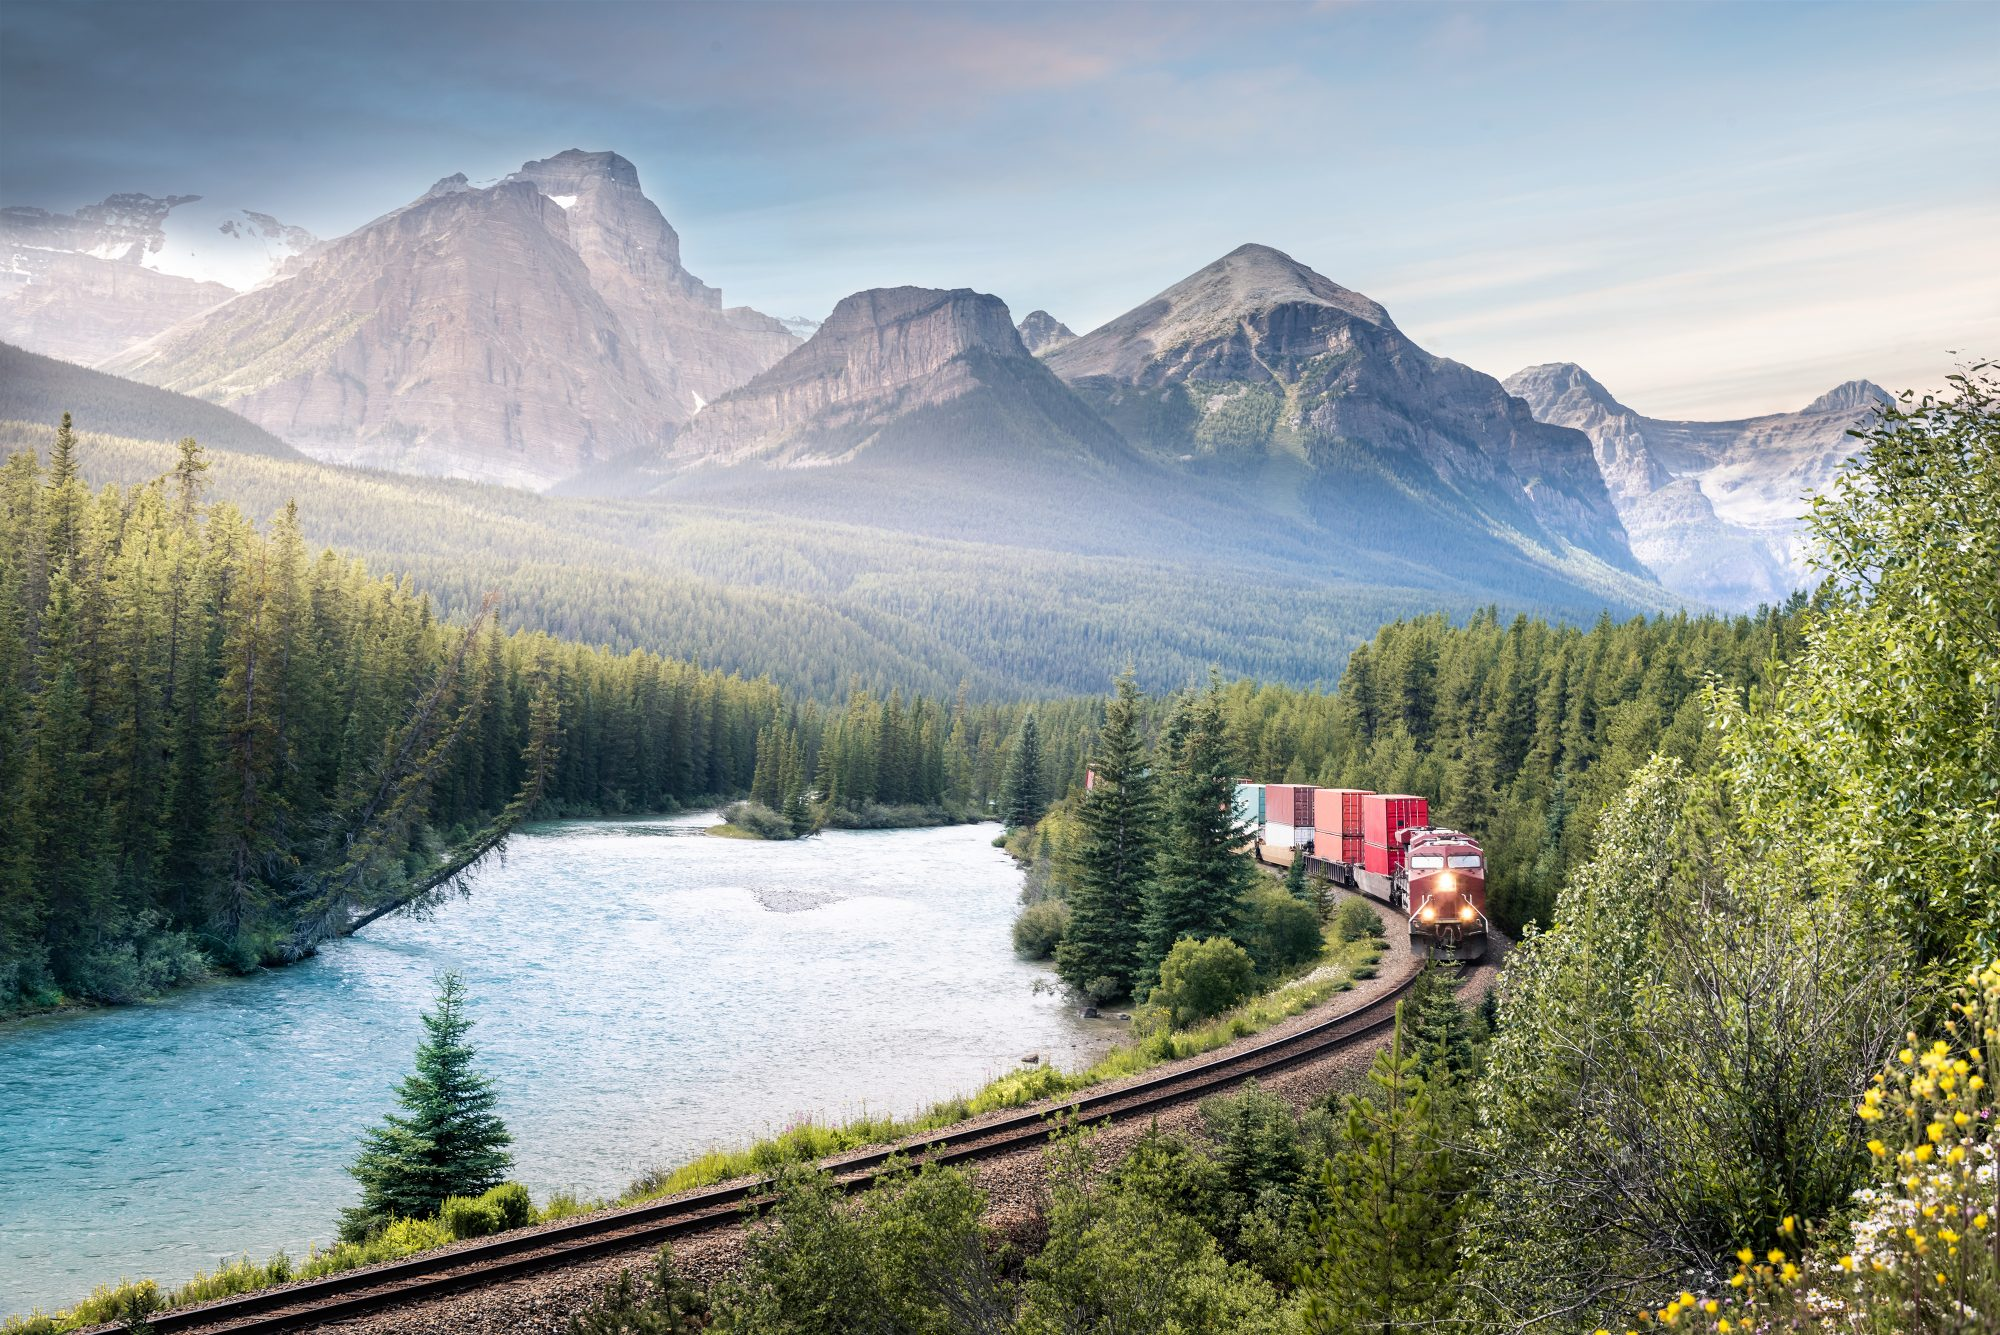 12 of the Most Scenic Train Rides to Take Across America